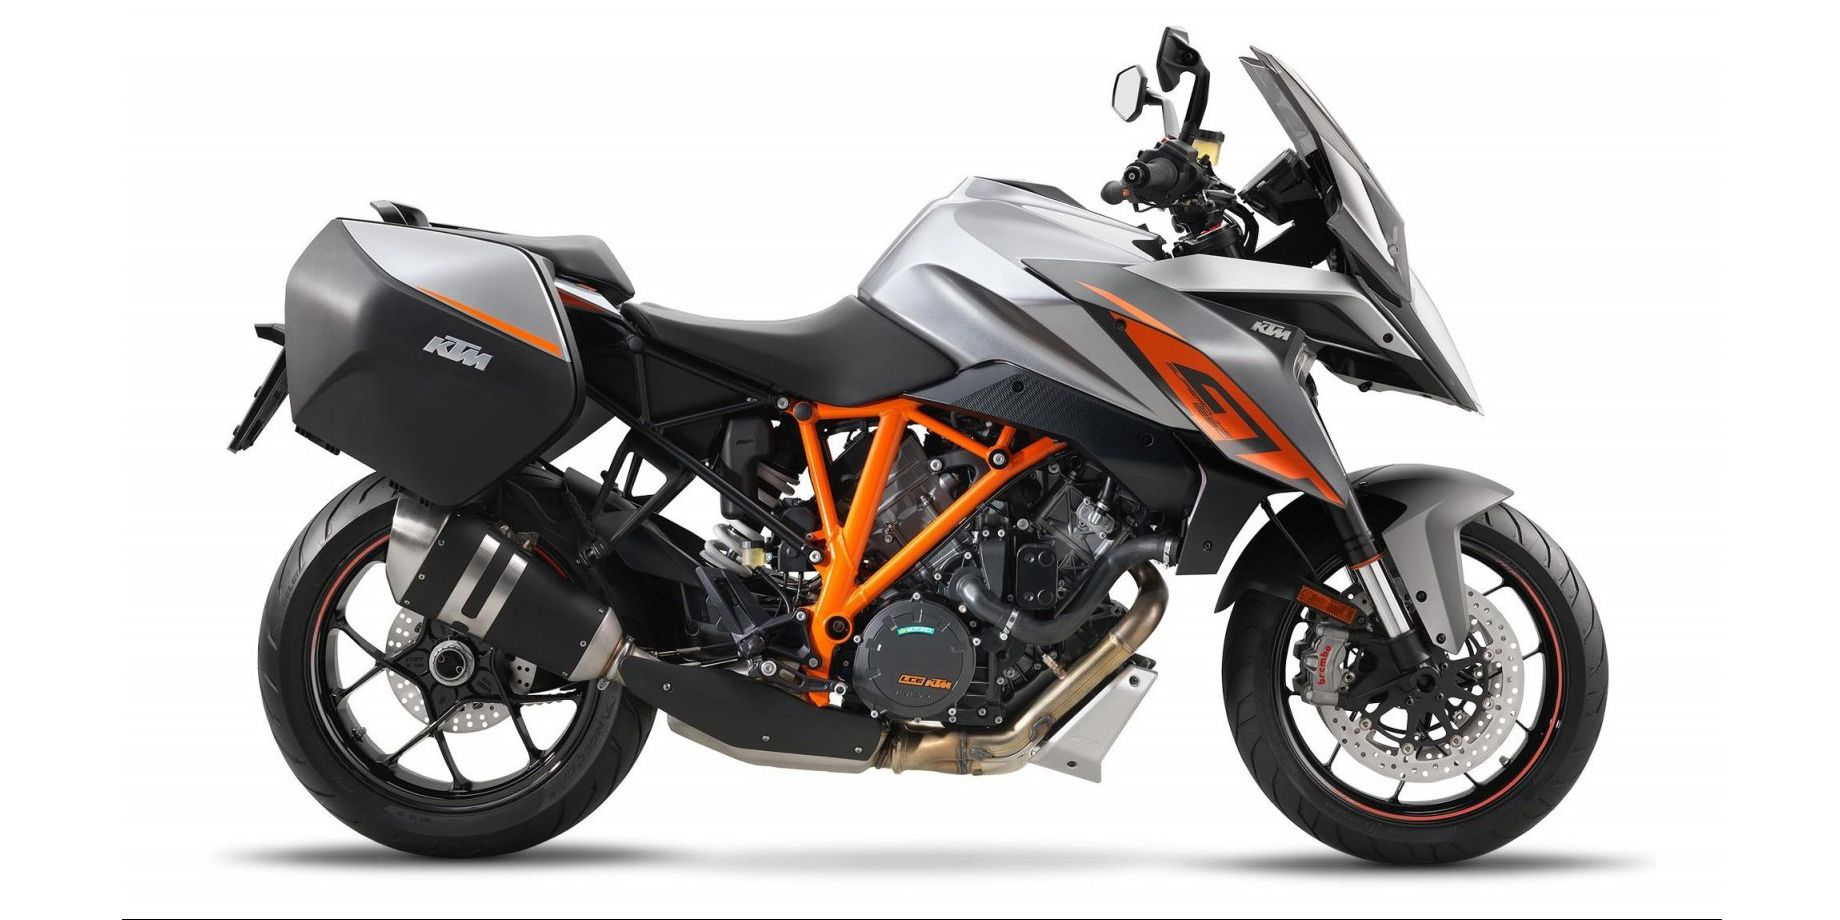 <p>KTM's astounding 173 horsepower LC8 engine finds a new home in the 1290 Super Duke GT, a sport-touring bike built for serious performance. Like other big KTMs, it features Bosch's MSC lean-angle-sensitive ABS and semi-active WP suspension, and the GT even includes a quick-shifter. Creature comforts like electronic cruise control, heated grips, and even Hill Hold Control will keep riders happy as they drain the large six-gallon fuel tank.</p>